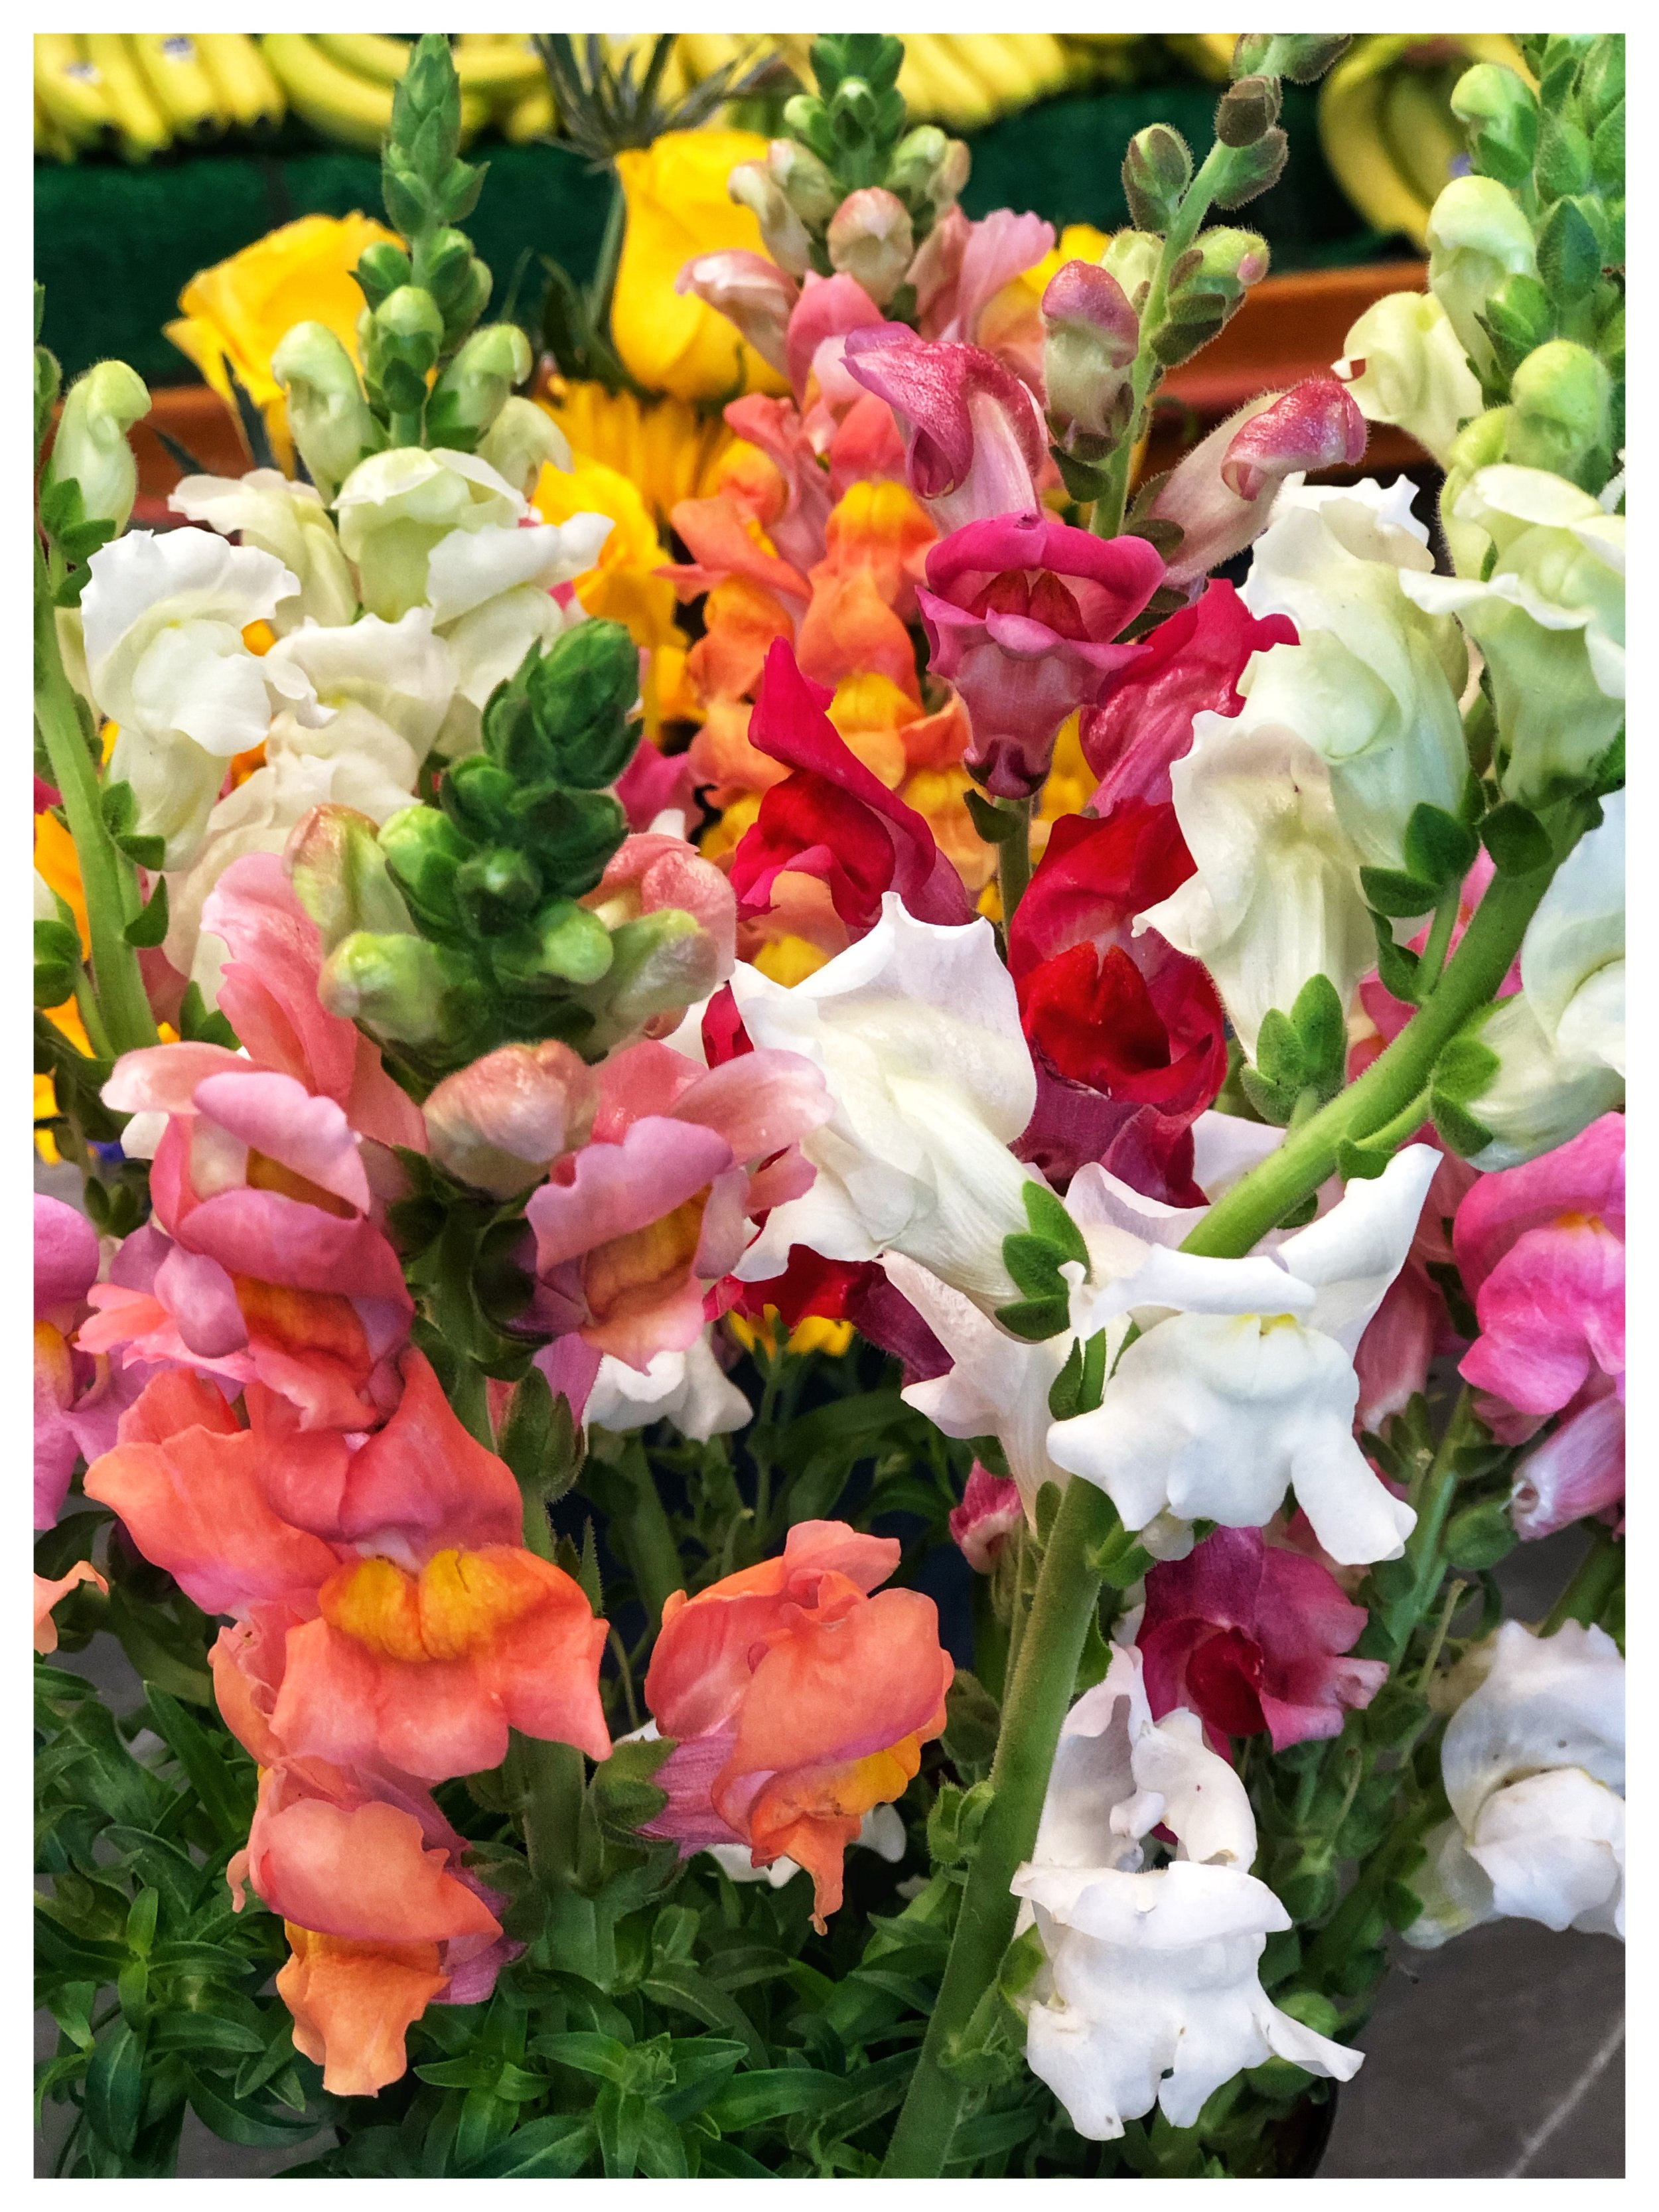 Locally grown snapdragons from Macone Farm in Concord, Massachusetts